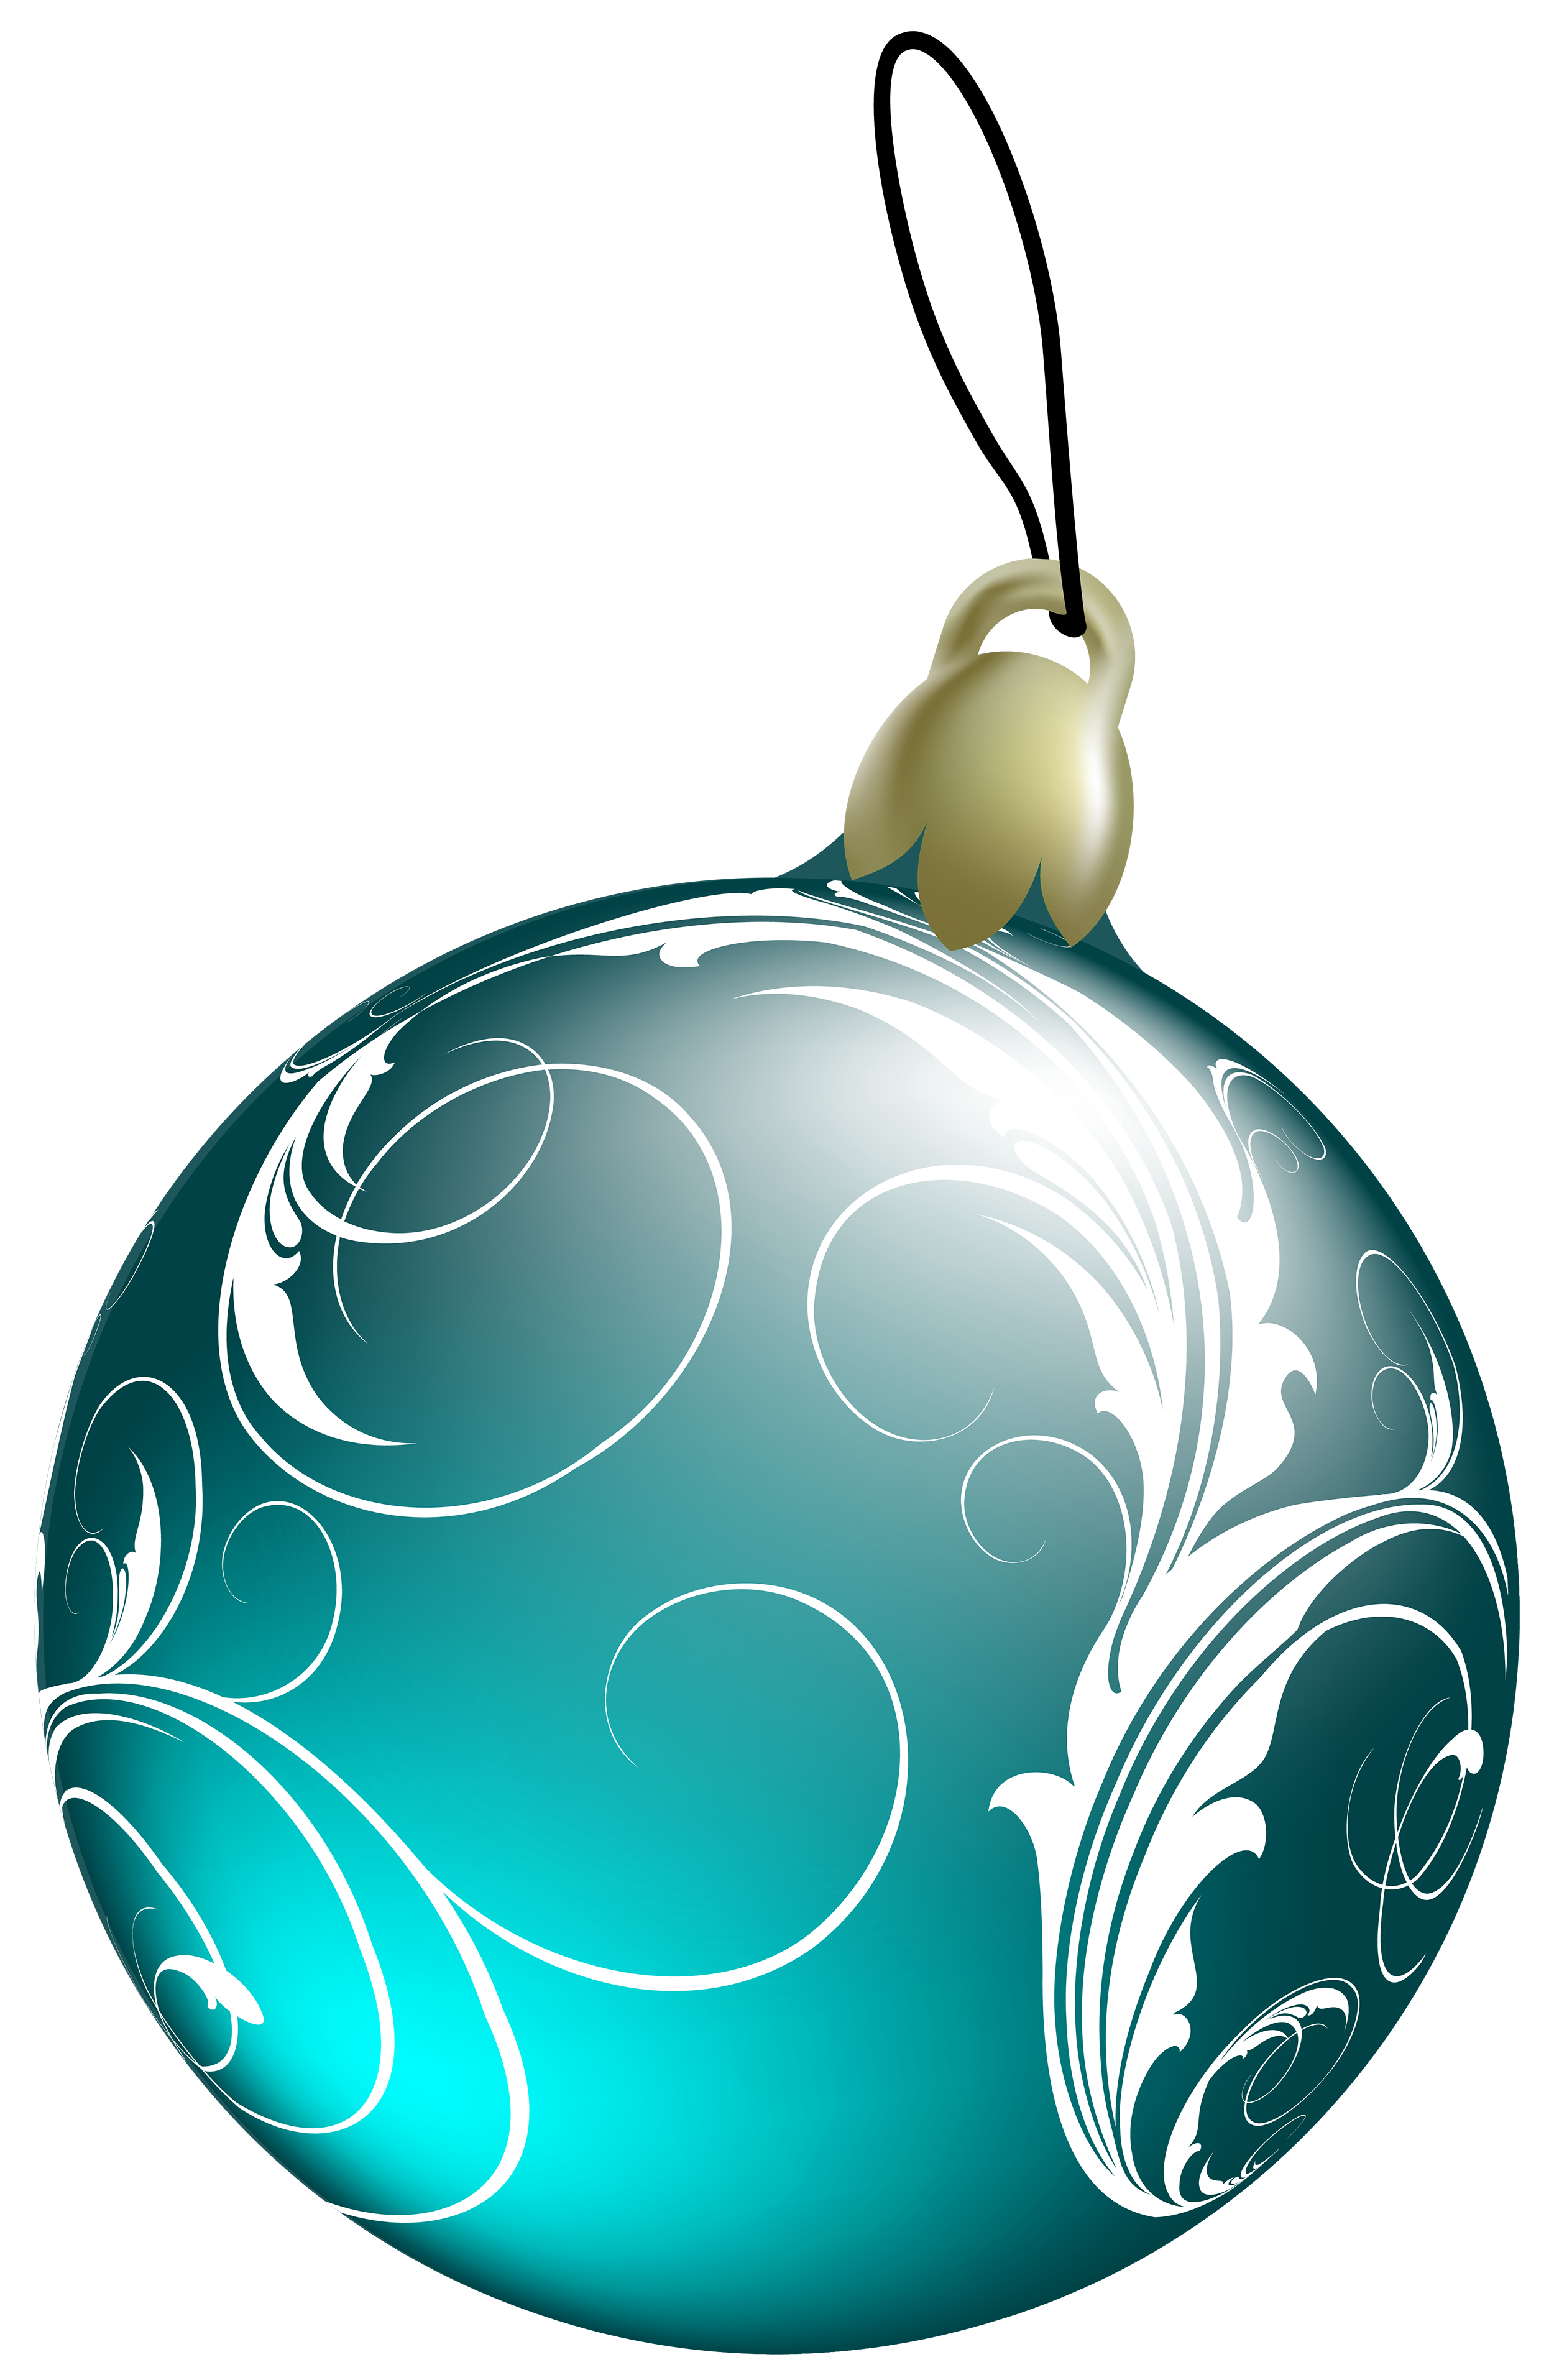 Download Free High quality Christmas Balls Png Transparent Images